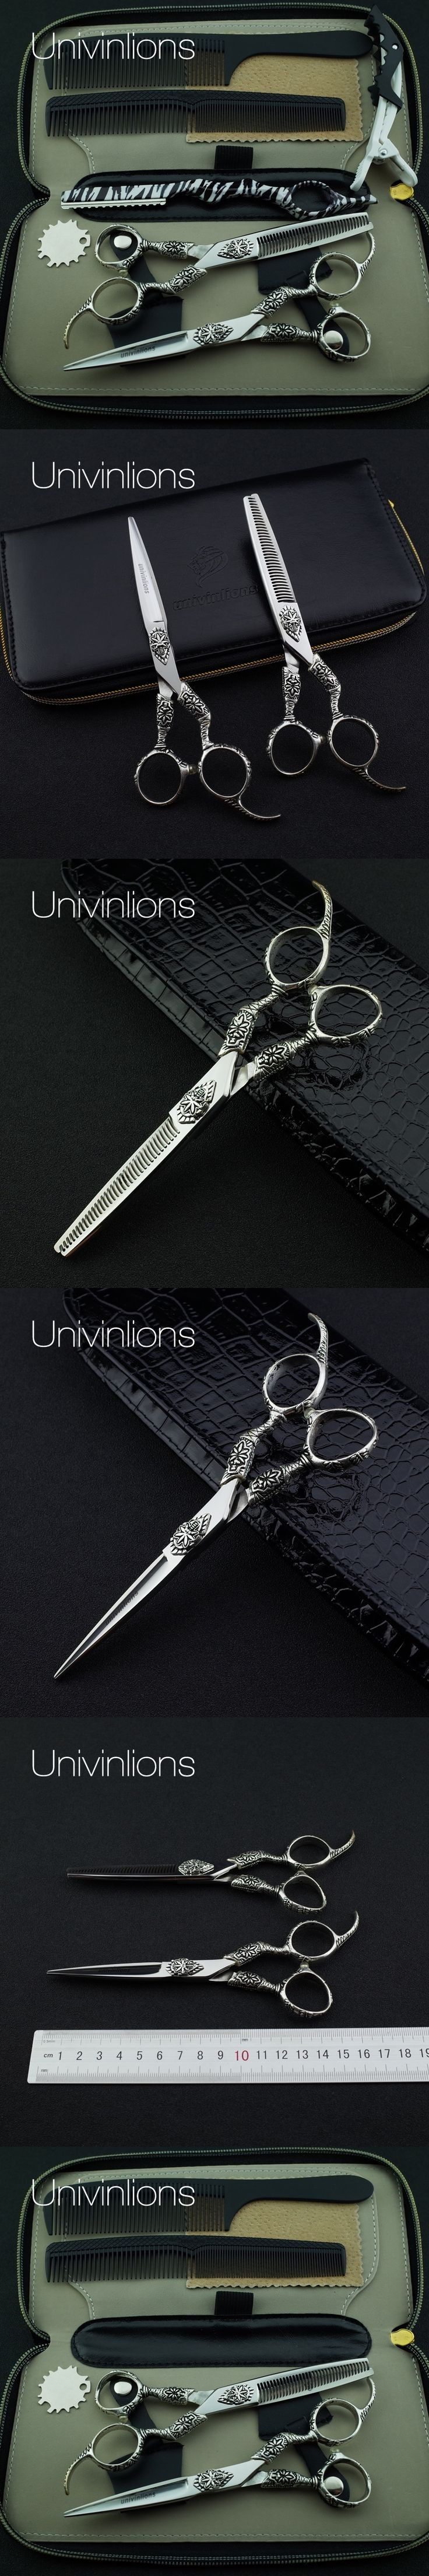 "6"" engraved japanese hair cutting shears professional hairdressing scissors barber scissors 440C barber haircut cutting sissors"